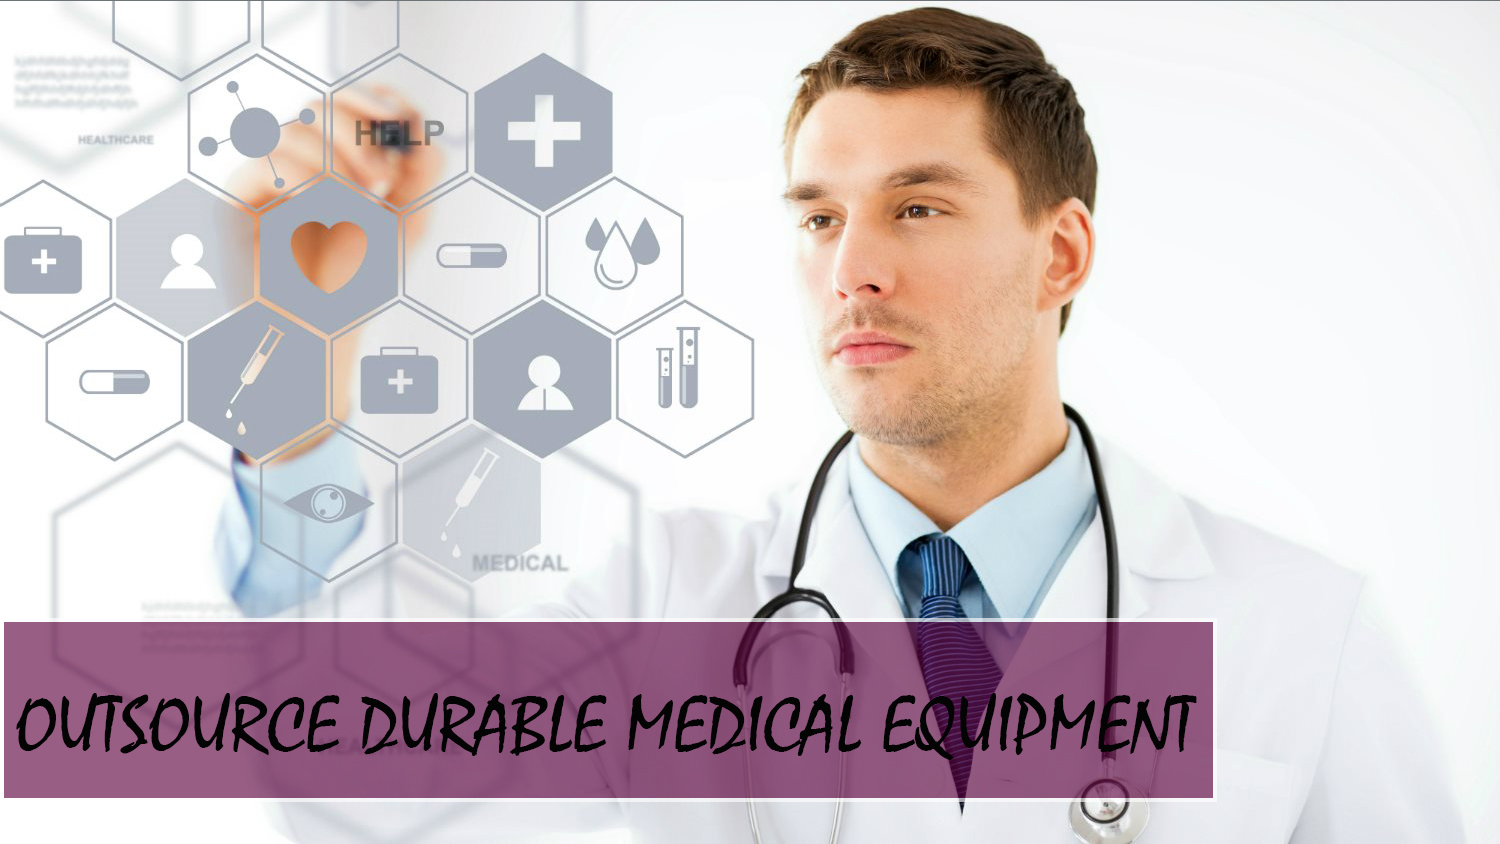 Outsource durable medical equipment